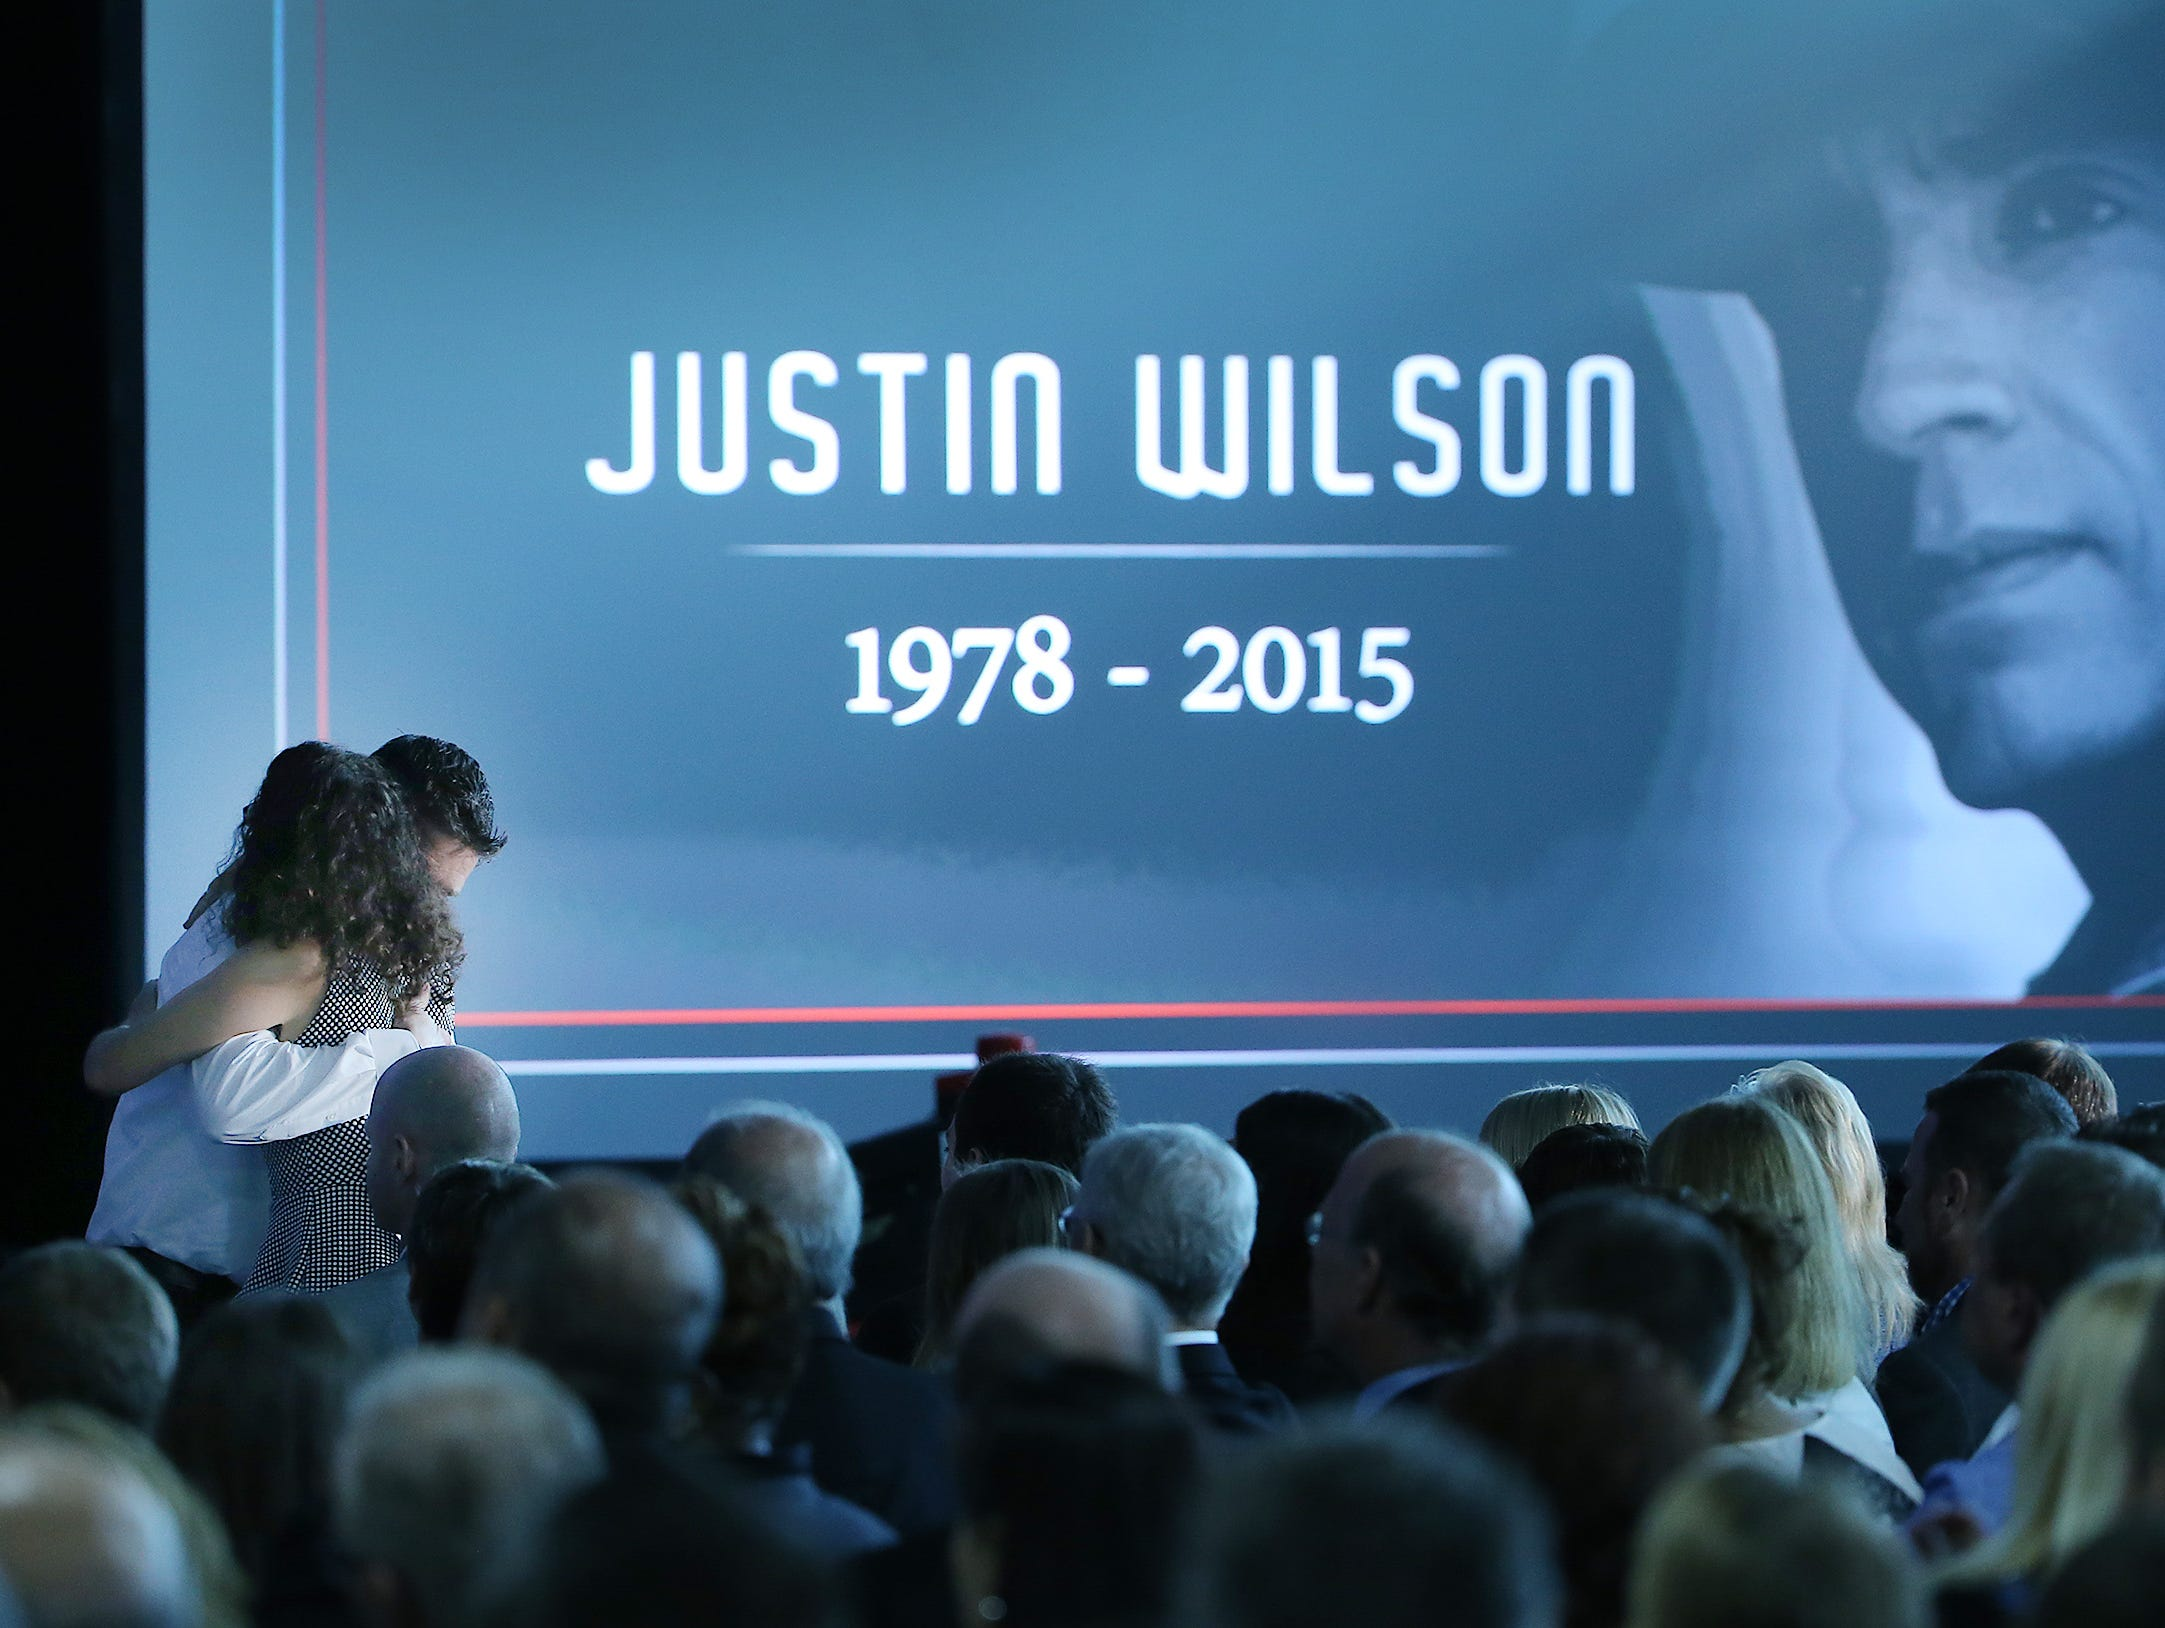 """The Indianapolis Motor Speedway hosted """"Celebrating the Life of Justin Wilson"""" Tuesday, Sept. 29, 2015 afternoon at the IMS pavilion. Here Chris Mower hugs Julia Wilson, Justin's widow, during the memorial."""